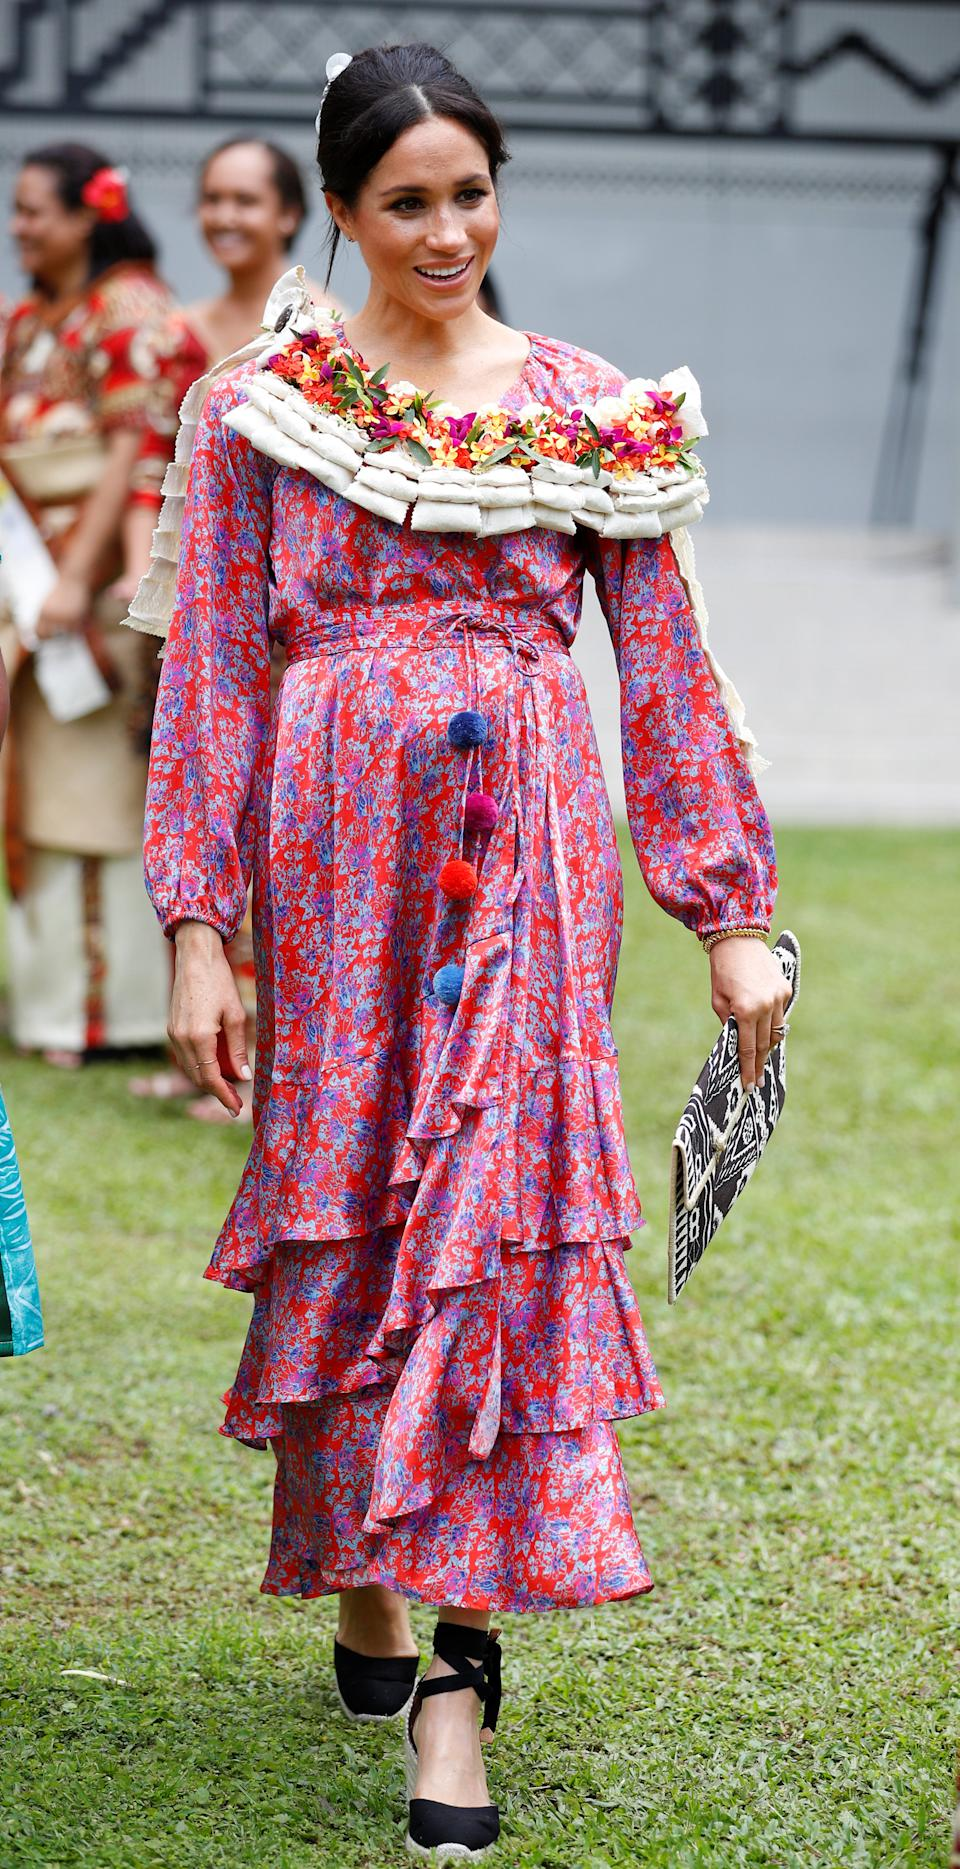 She may be a member of the Windsor household but the Duchess of Sussex proved she can still have fun with fashion in a £1,155 pom-pom dress by New York label Figue. Seeking inspiration from sister-in-law Kate, she finished the look with a pair of Kensington Palace-approved Castañer espadrilles. <em>[Photo: Getty]</em>